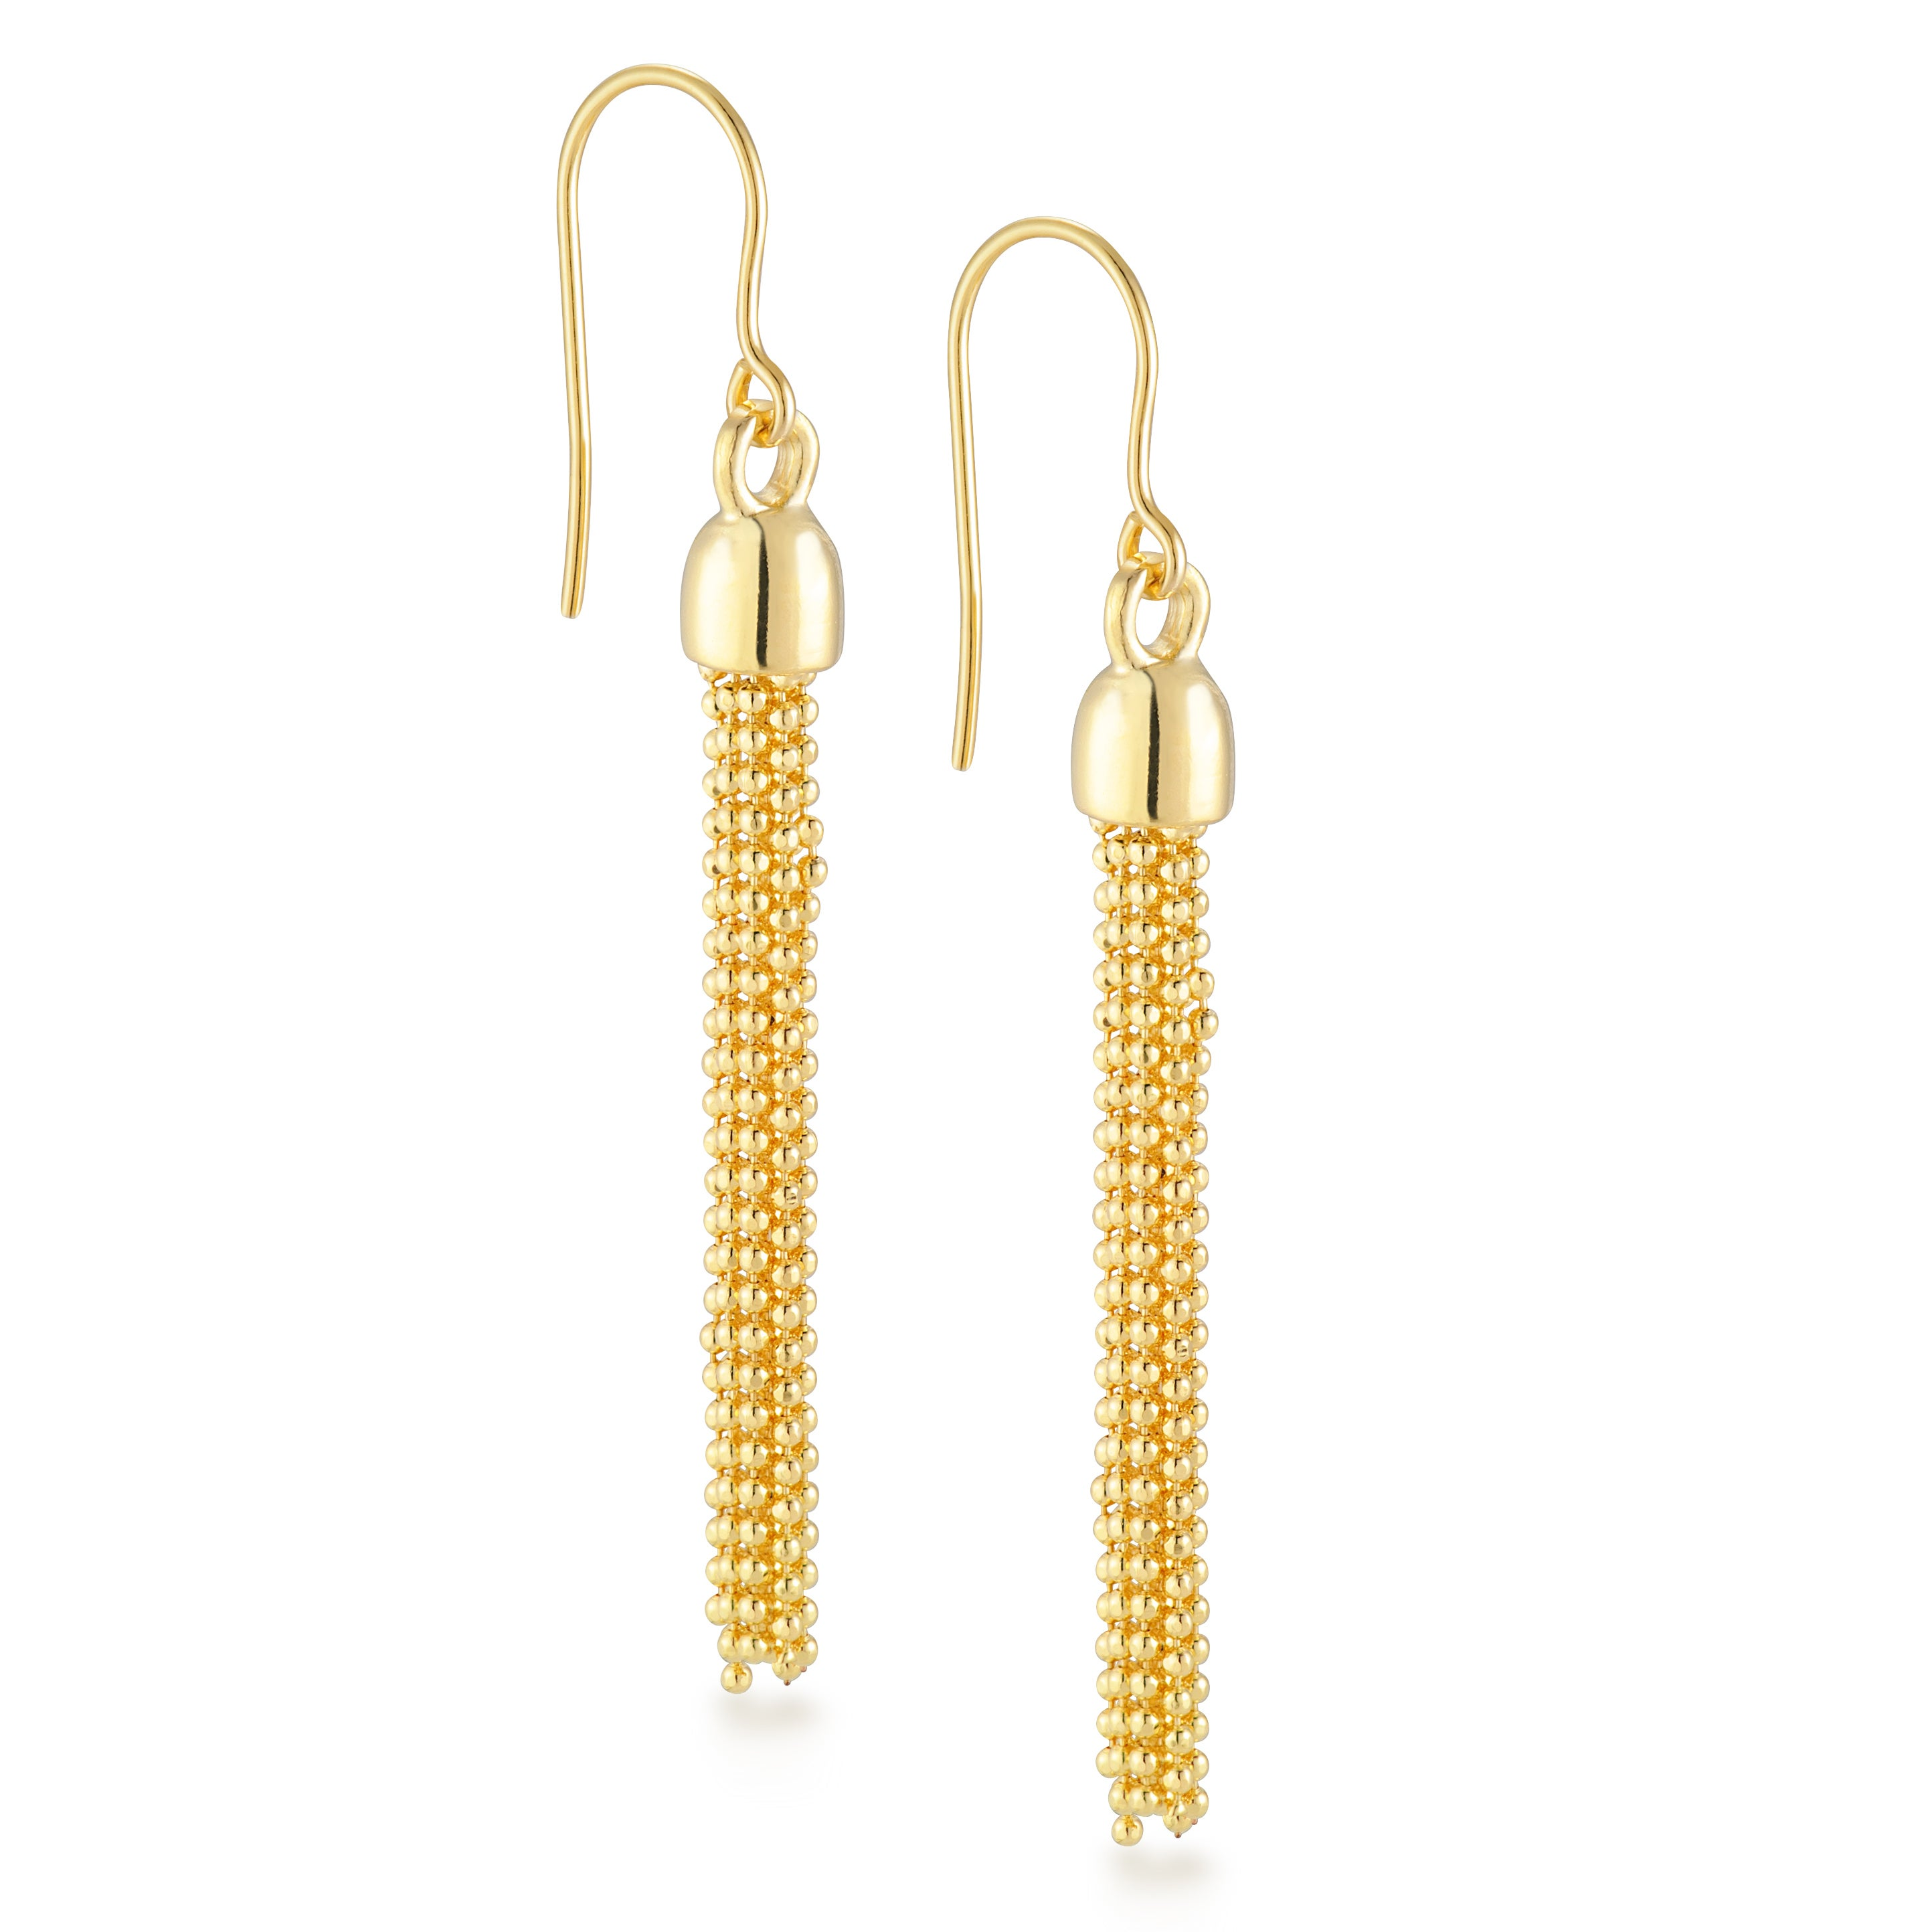 18k Gold Overlay 10 Strand Multi Chain Drop Earrings On Free Shipping Today 10138522